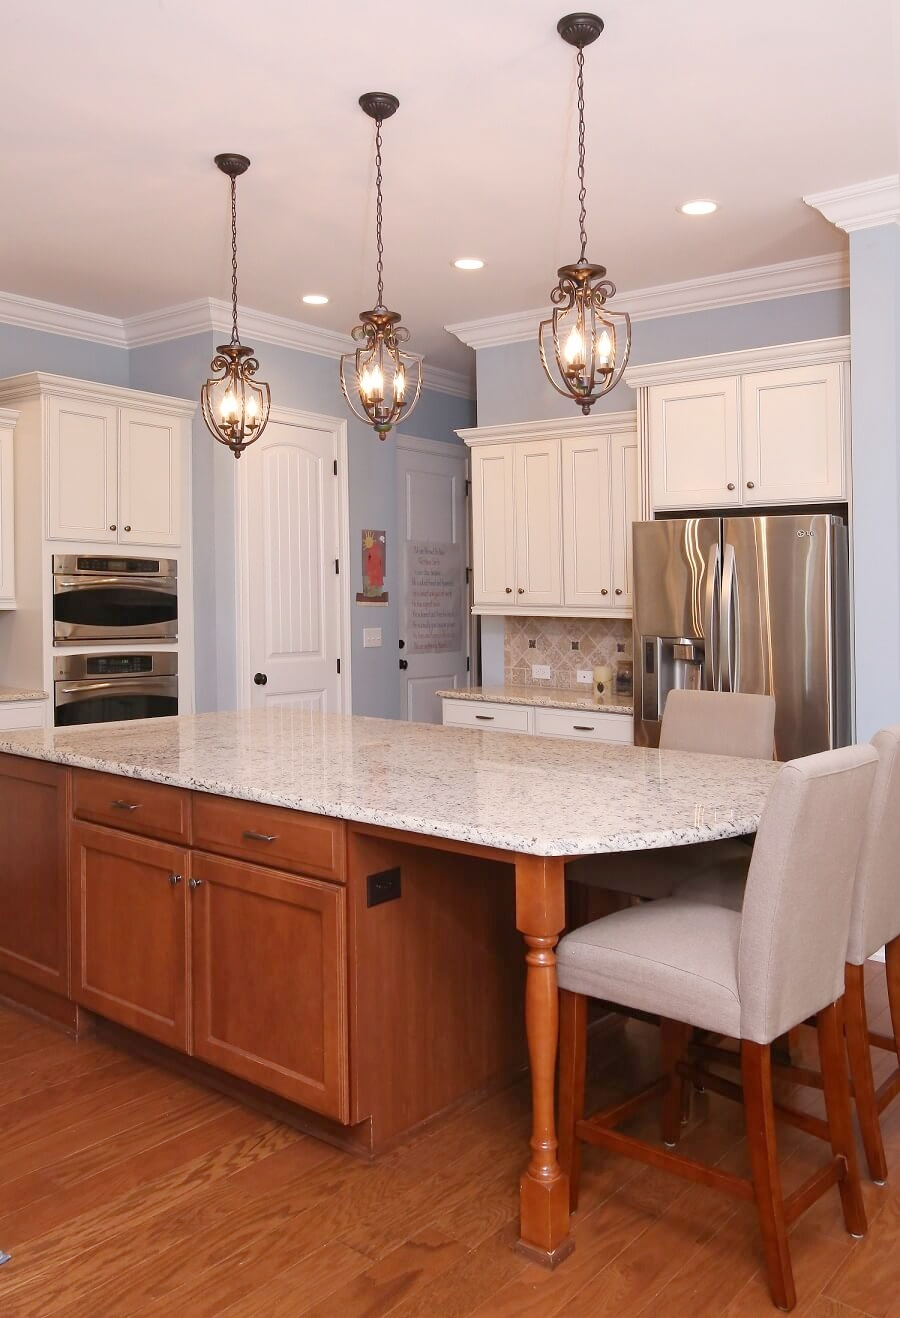 By adding new light fixtures over the large granite island and LED bulbs in the recessed cans, this Raleigh Kitchen absolutely sparkles.